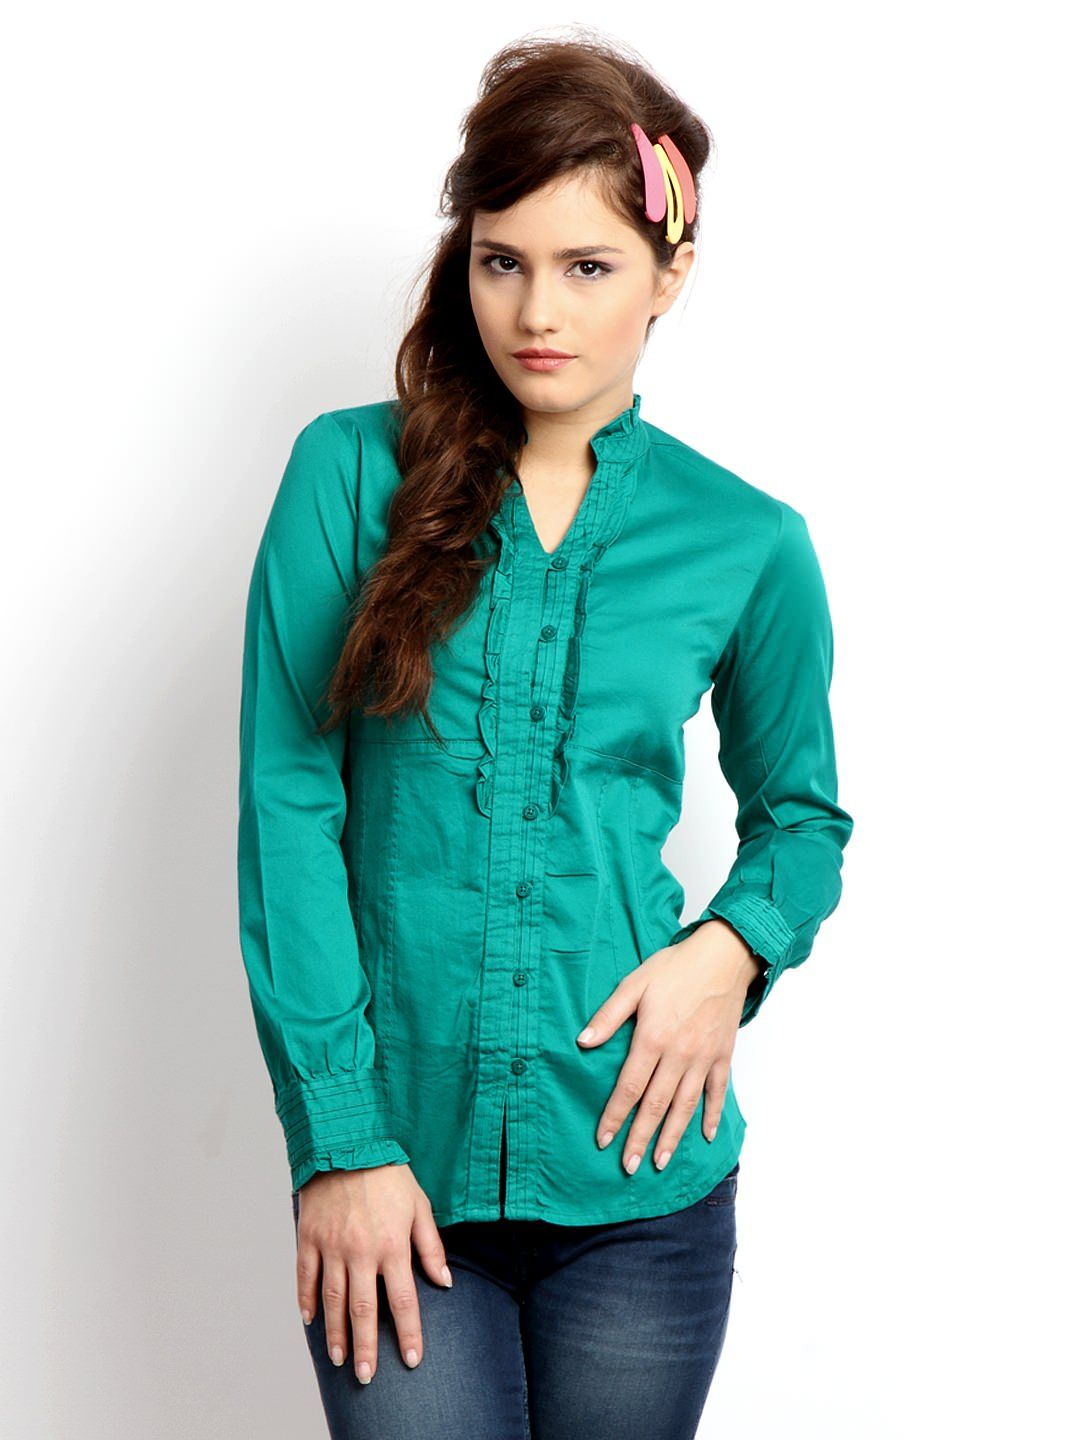 Exclusive Shirts,Tops and tunics For Women By Top Brands ...